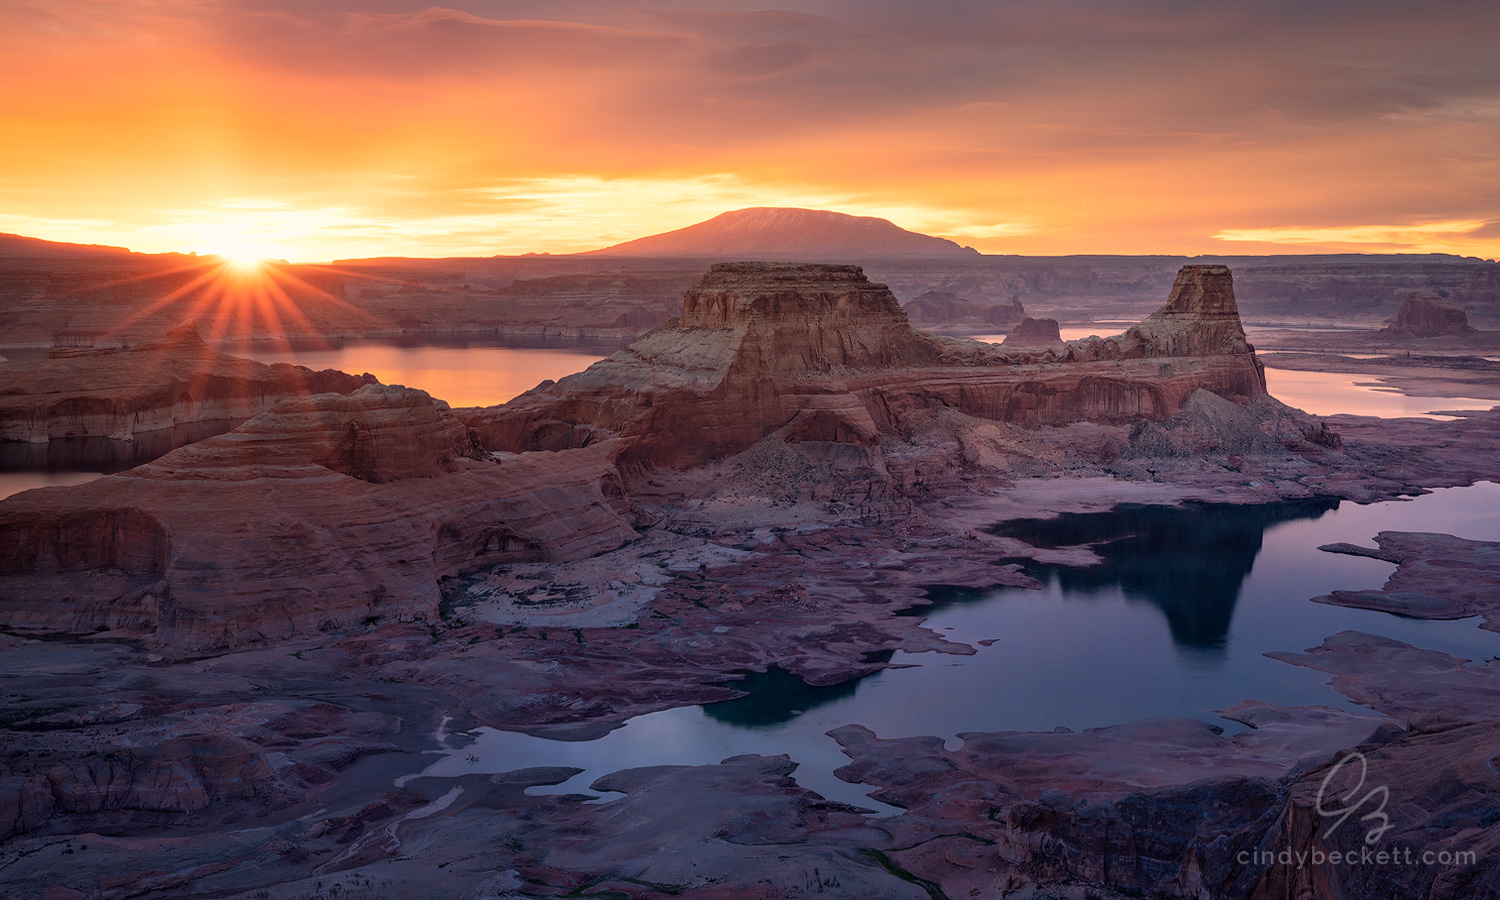 A cloudy and colorful sunrise scene over red rock canyon walls and formations surrounded by the waters of Lake Powell.